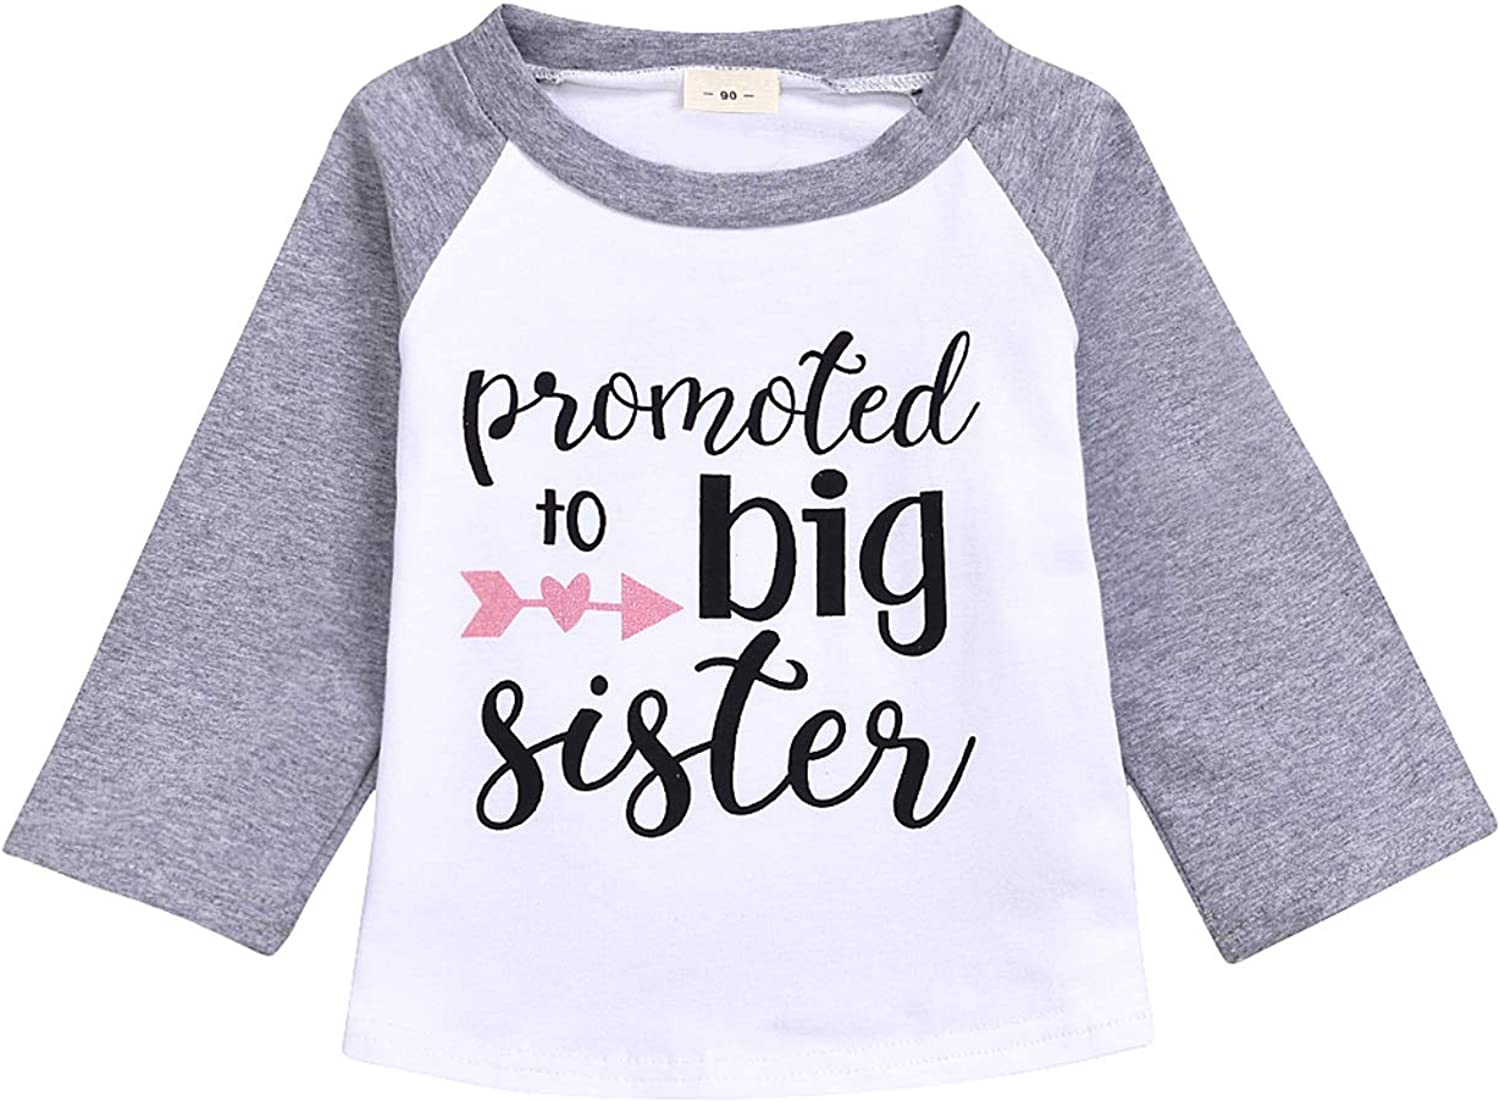 JEELLIGULAR Toddler Girls Clothes Promoted to Big Sister Print Long Sleeves Top T-Shirts